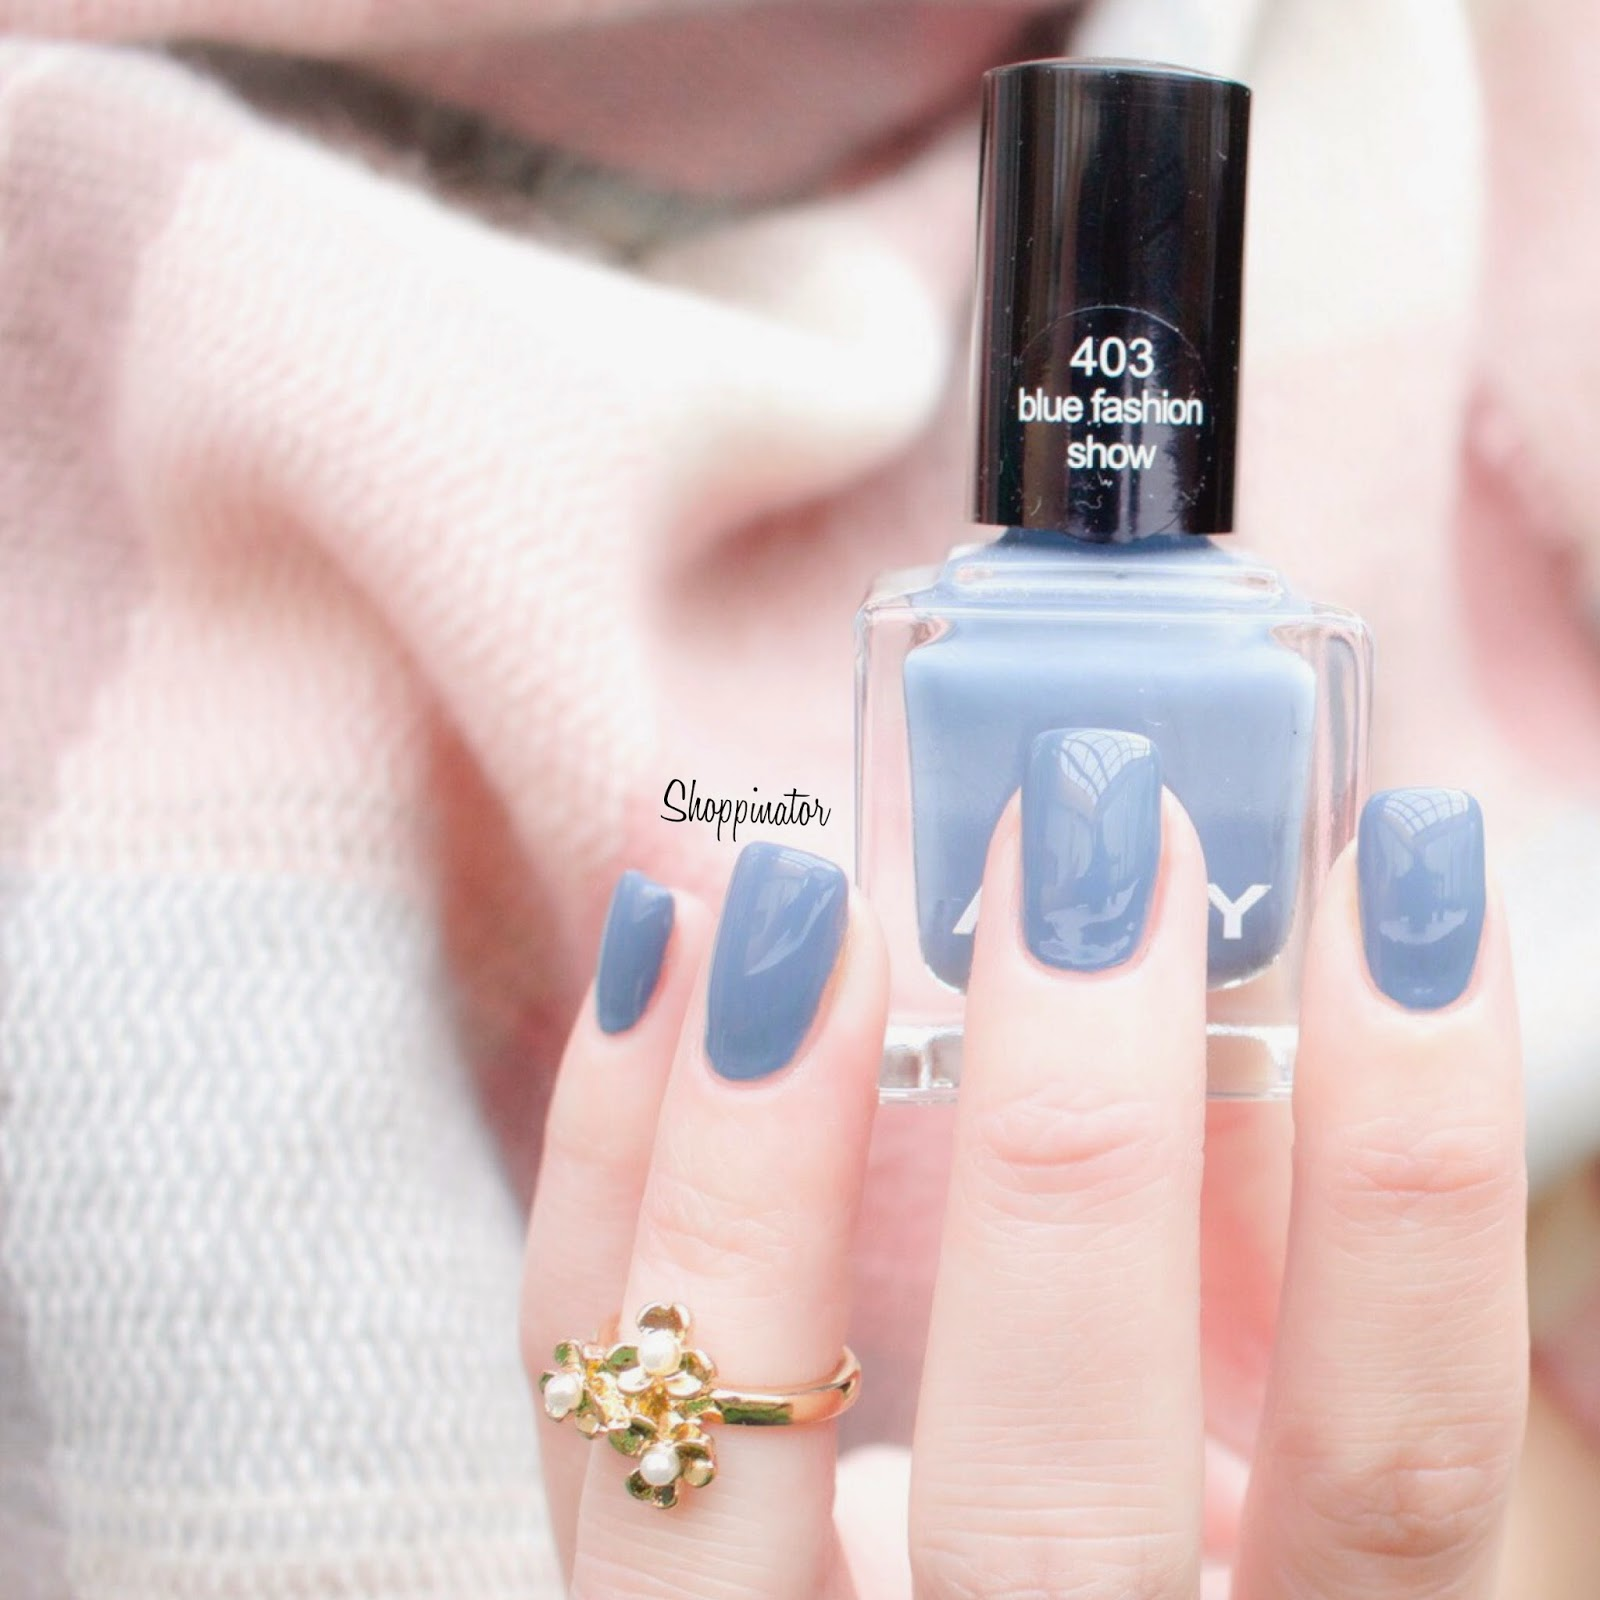 Anny-Blue-Fashion-Show-Swatch-Shoppinator-Nagellack-Notd-Nailpolish